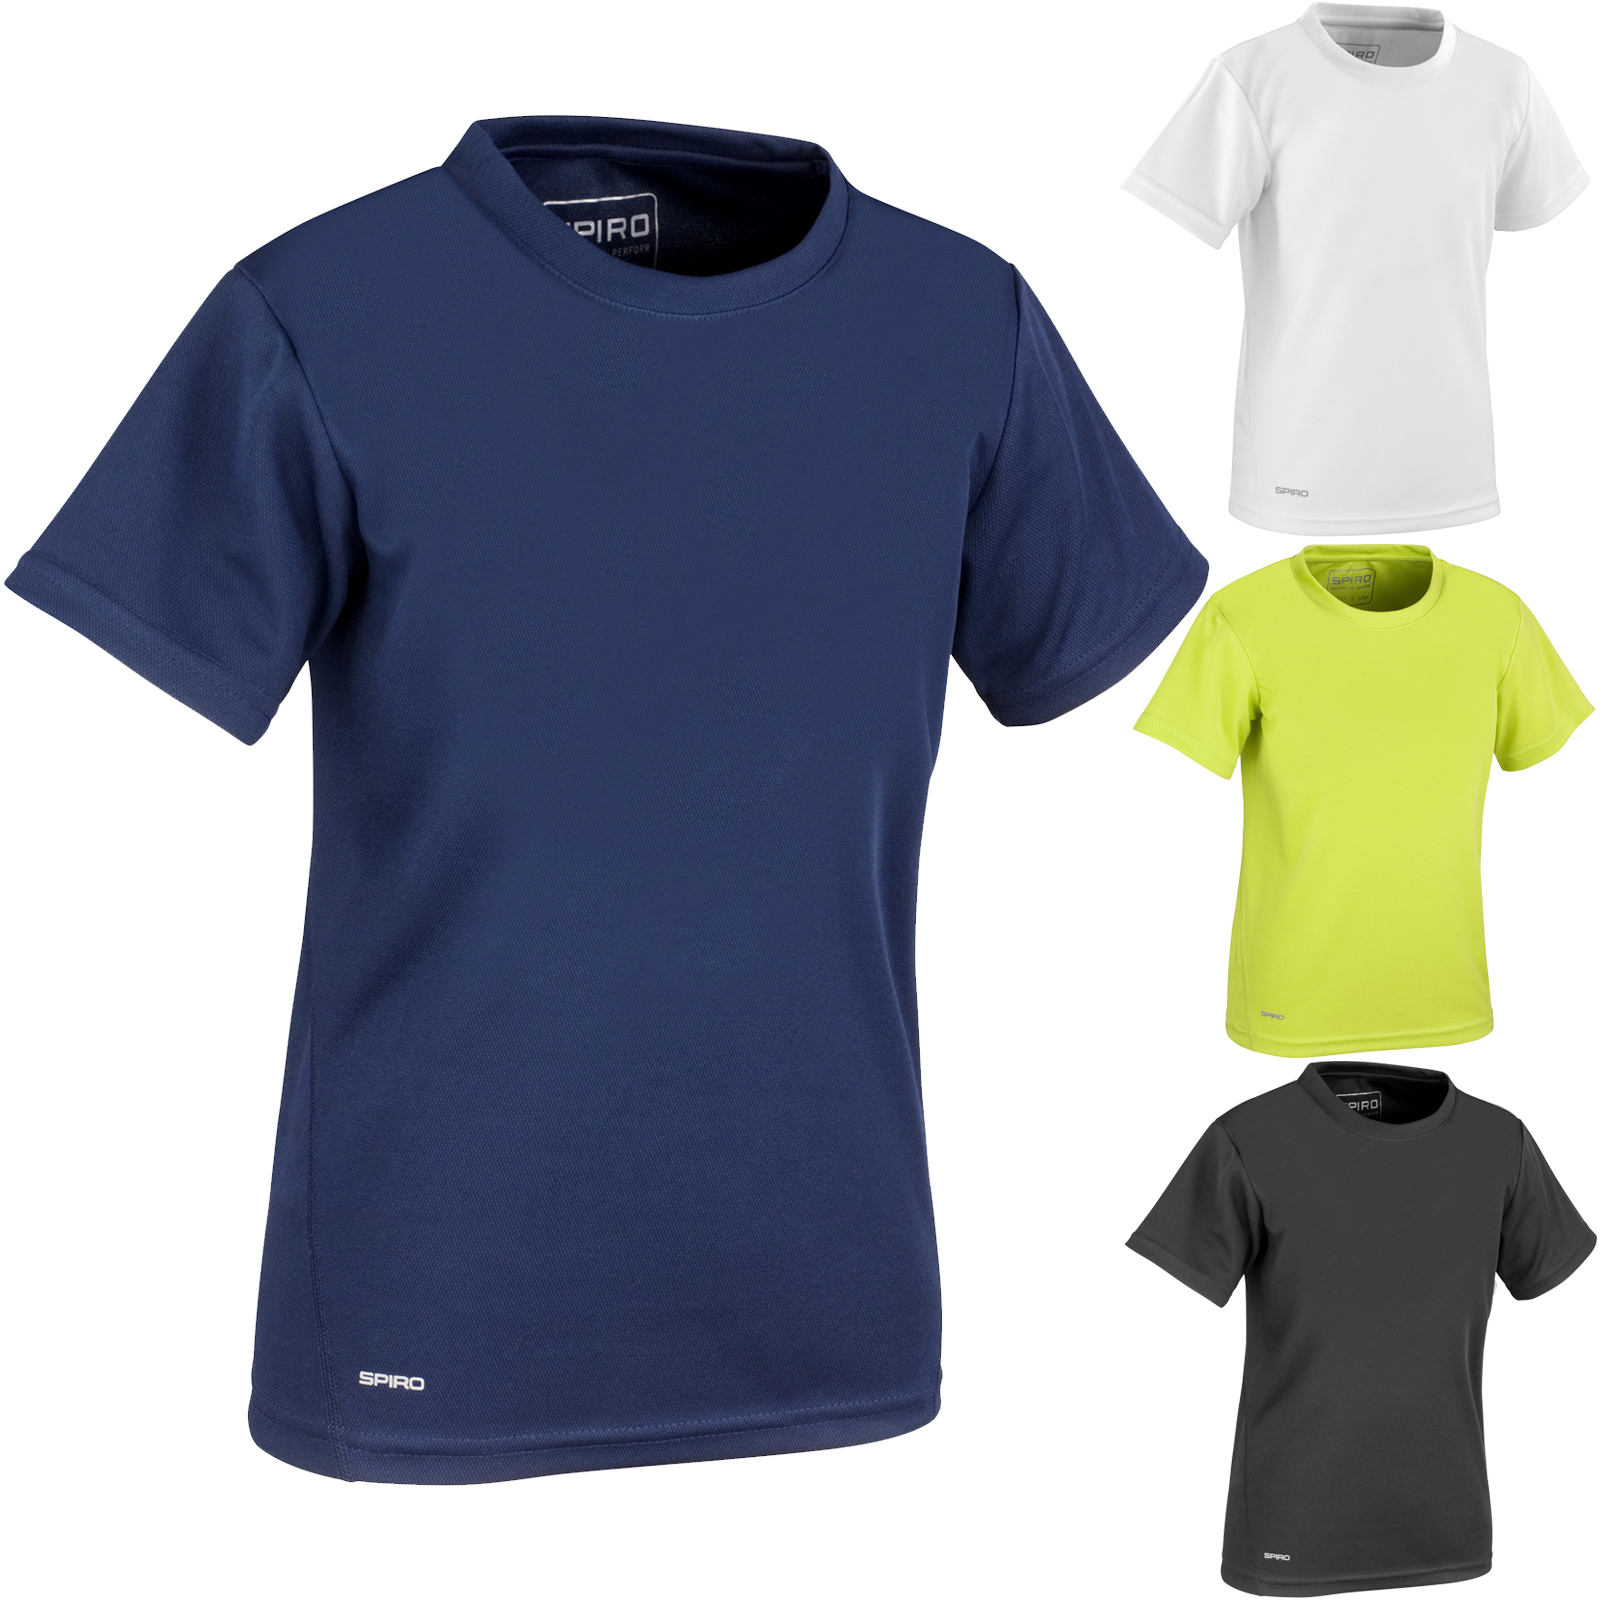 Spiro Spiro Quick Dry Short Sleeve Junior Tshirt Clothes, Shoes & Accessories